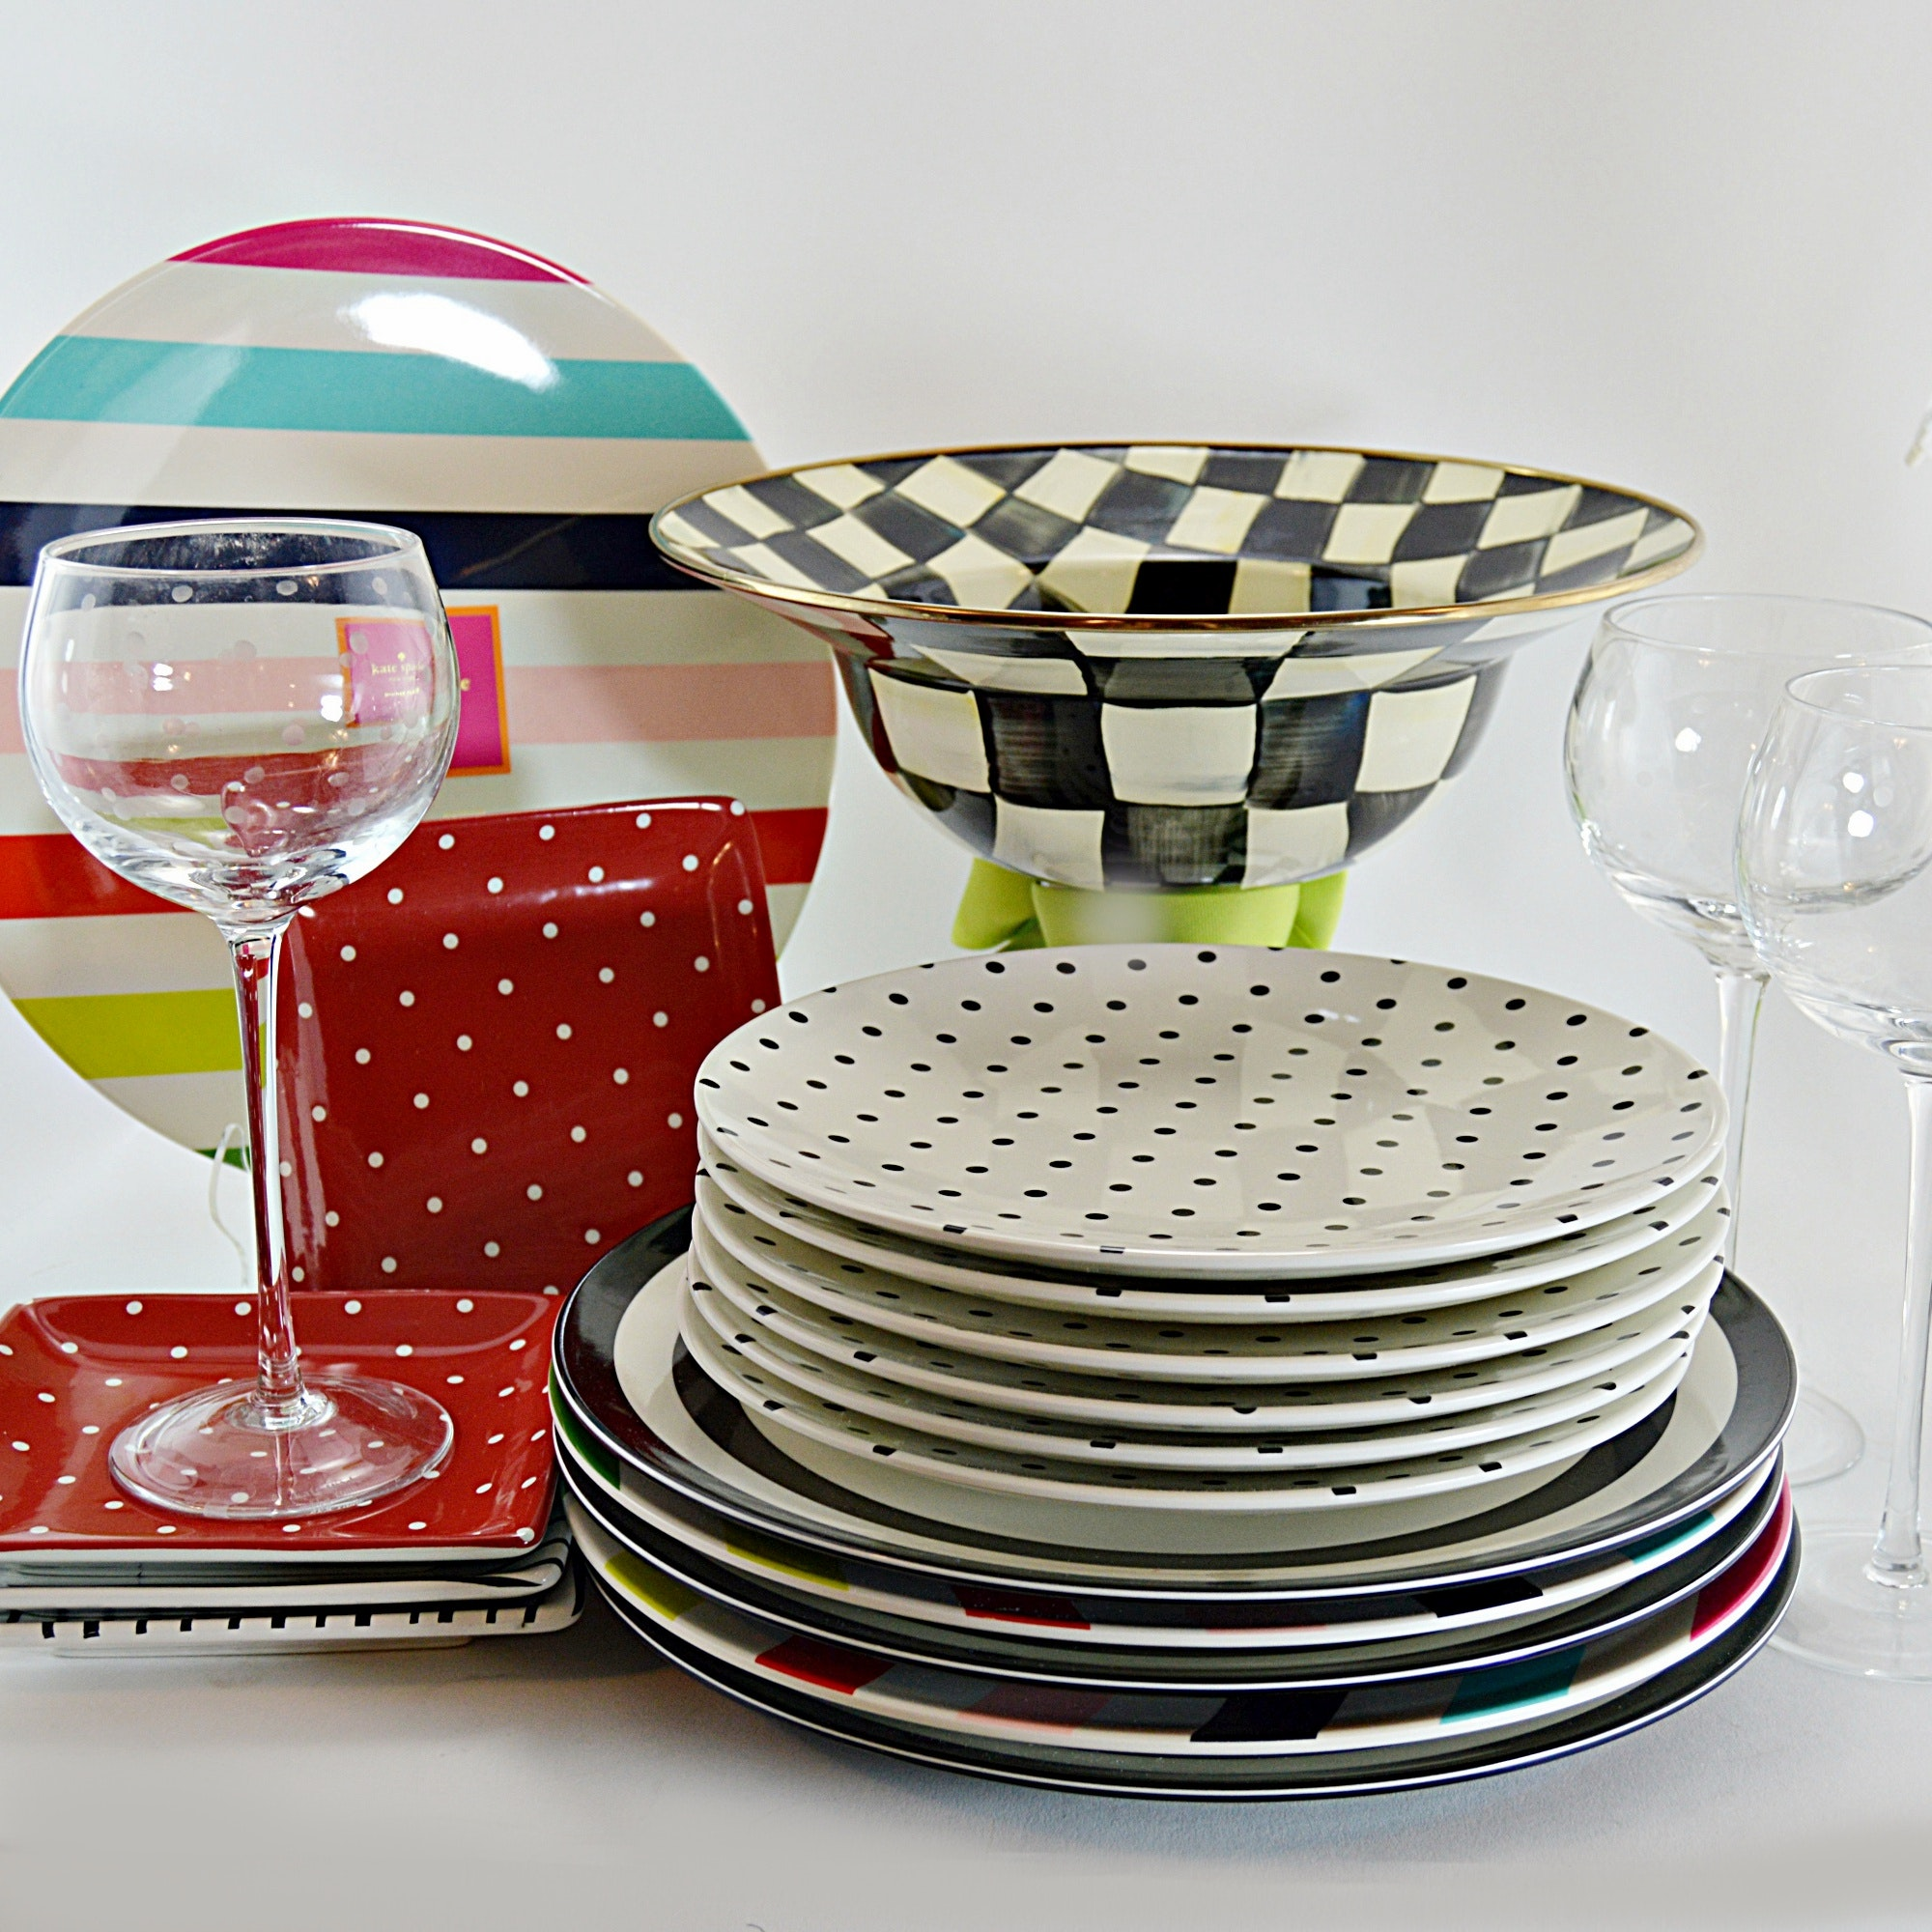 Kate Spade Dinnerware And Barware + Mackenzie Childs Compote ...